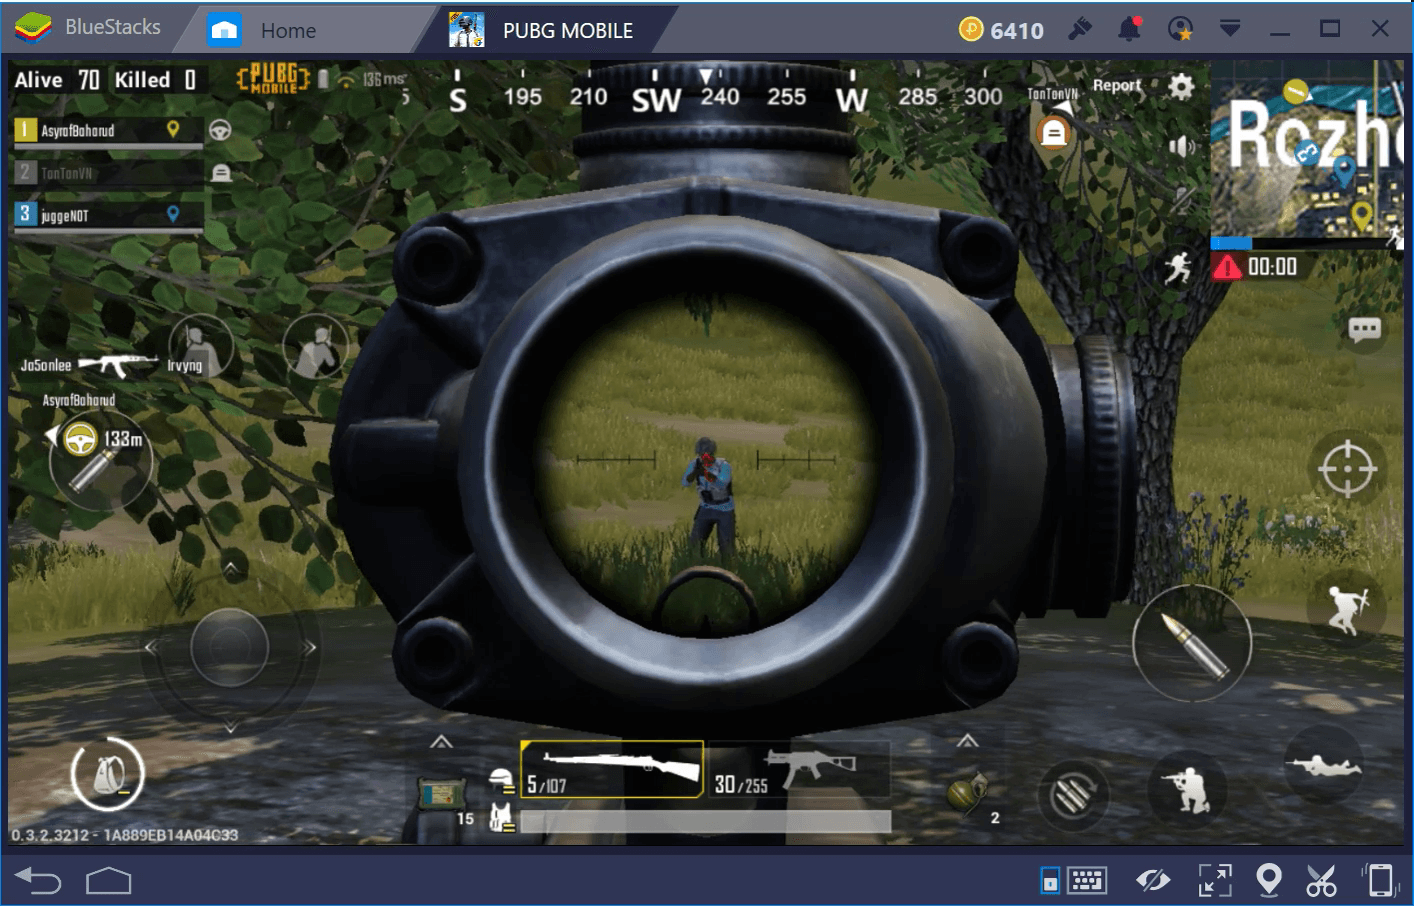 Top PUBG Mobile Combat Tips - How To Win More Gun Fights